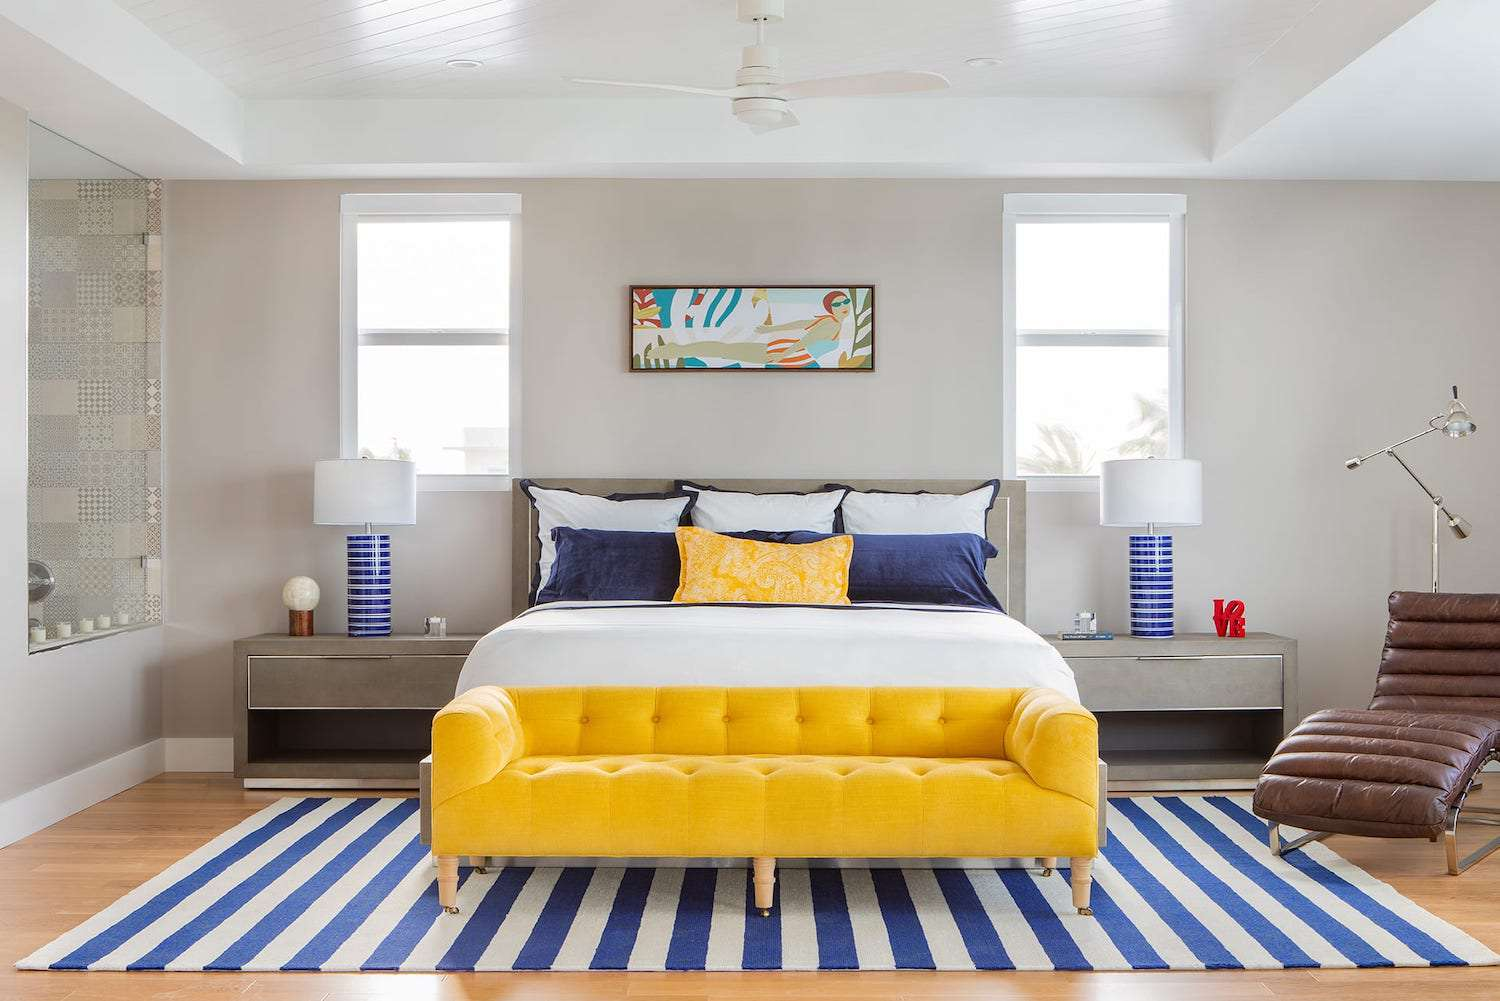 bedroom with yellow and blue decor